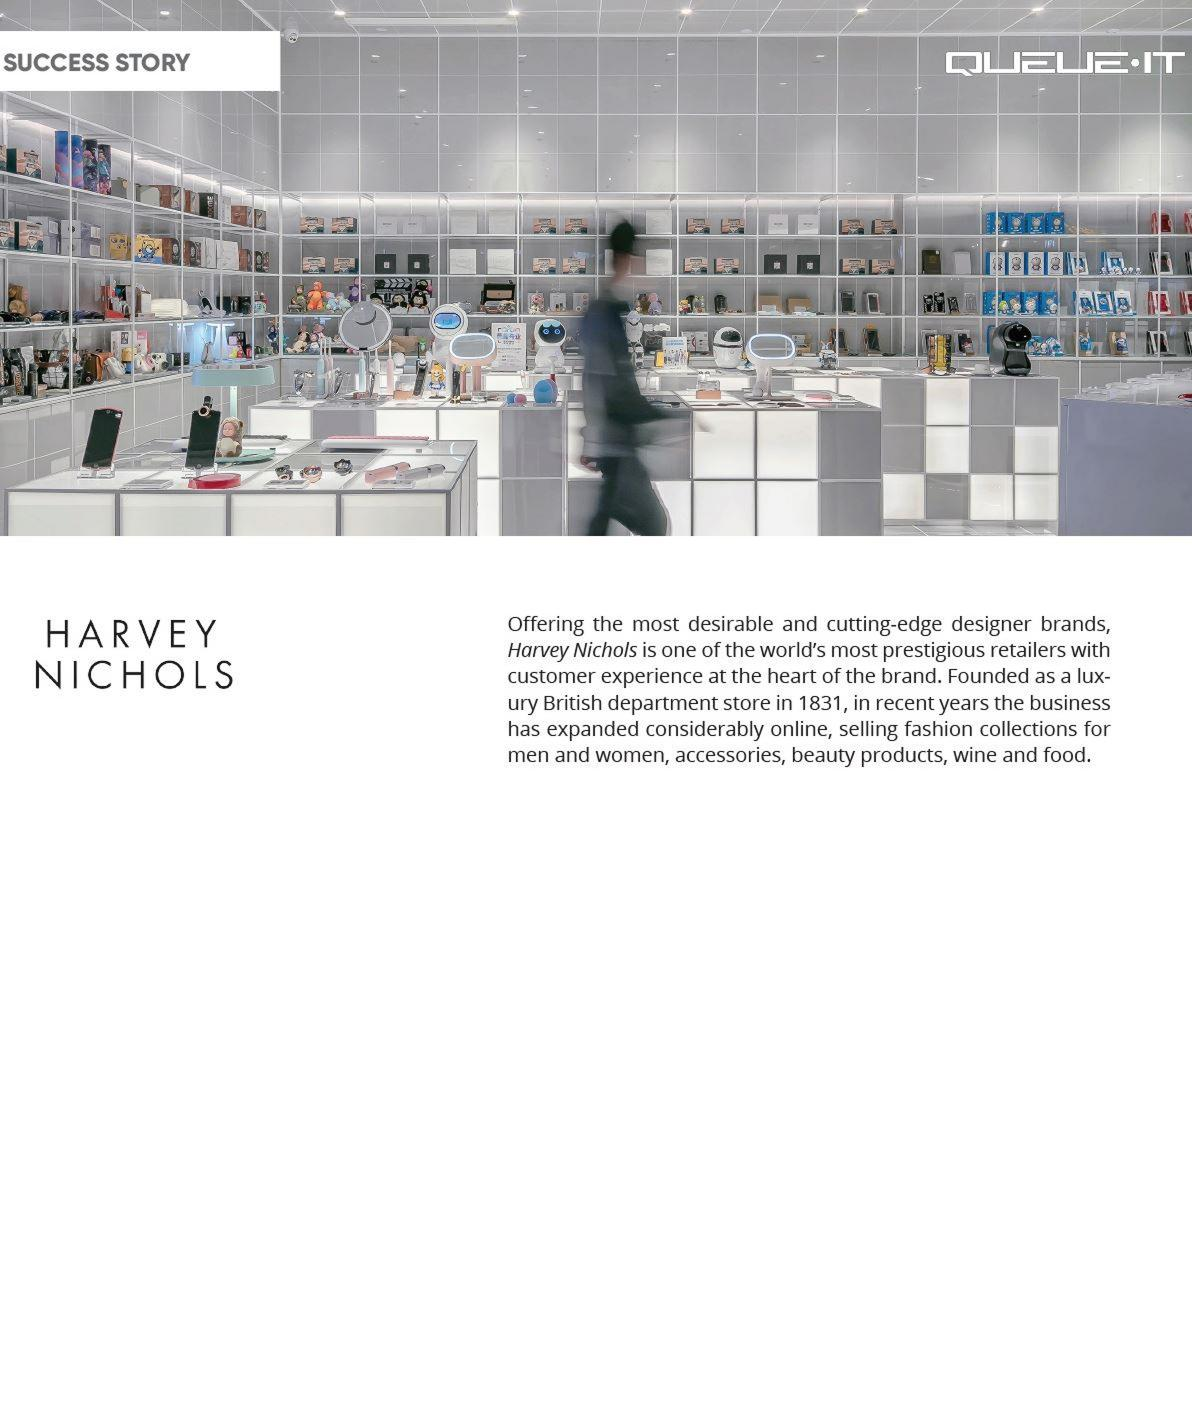 Harvey Nichols success story